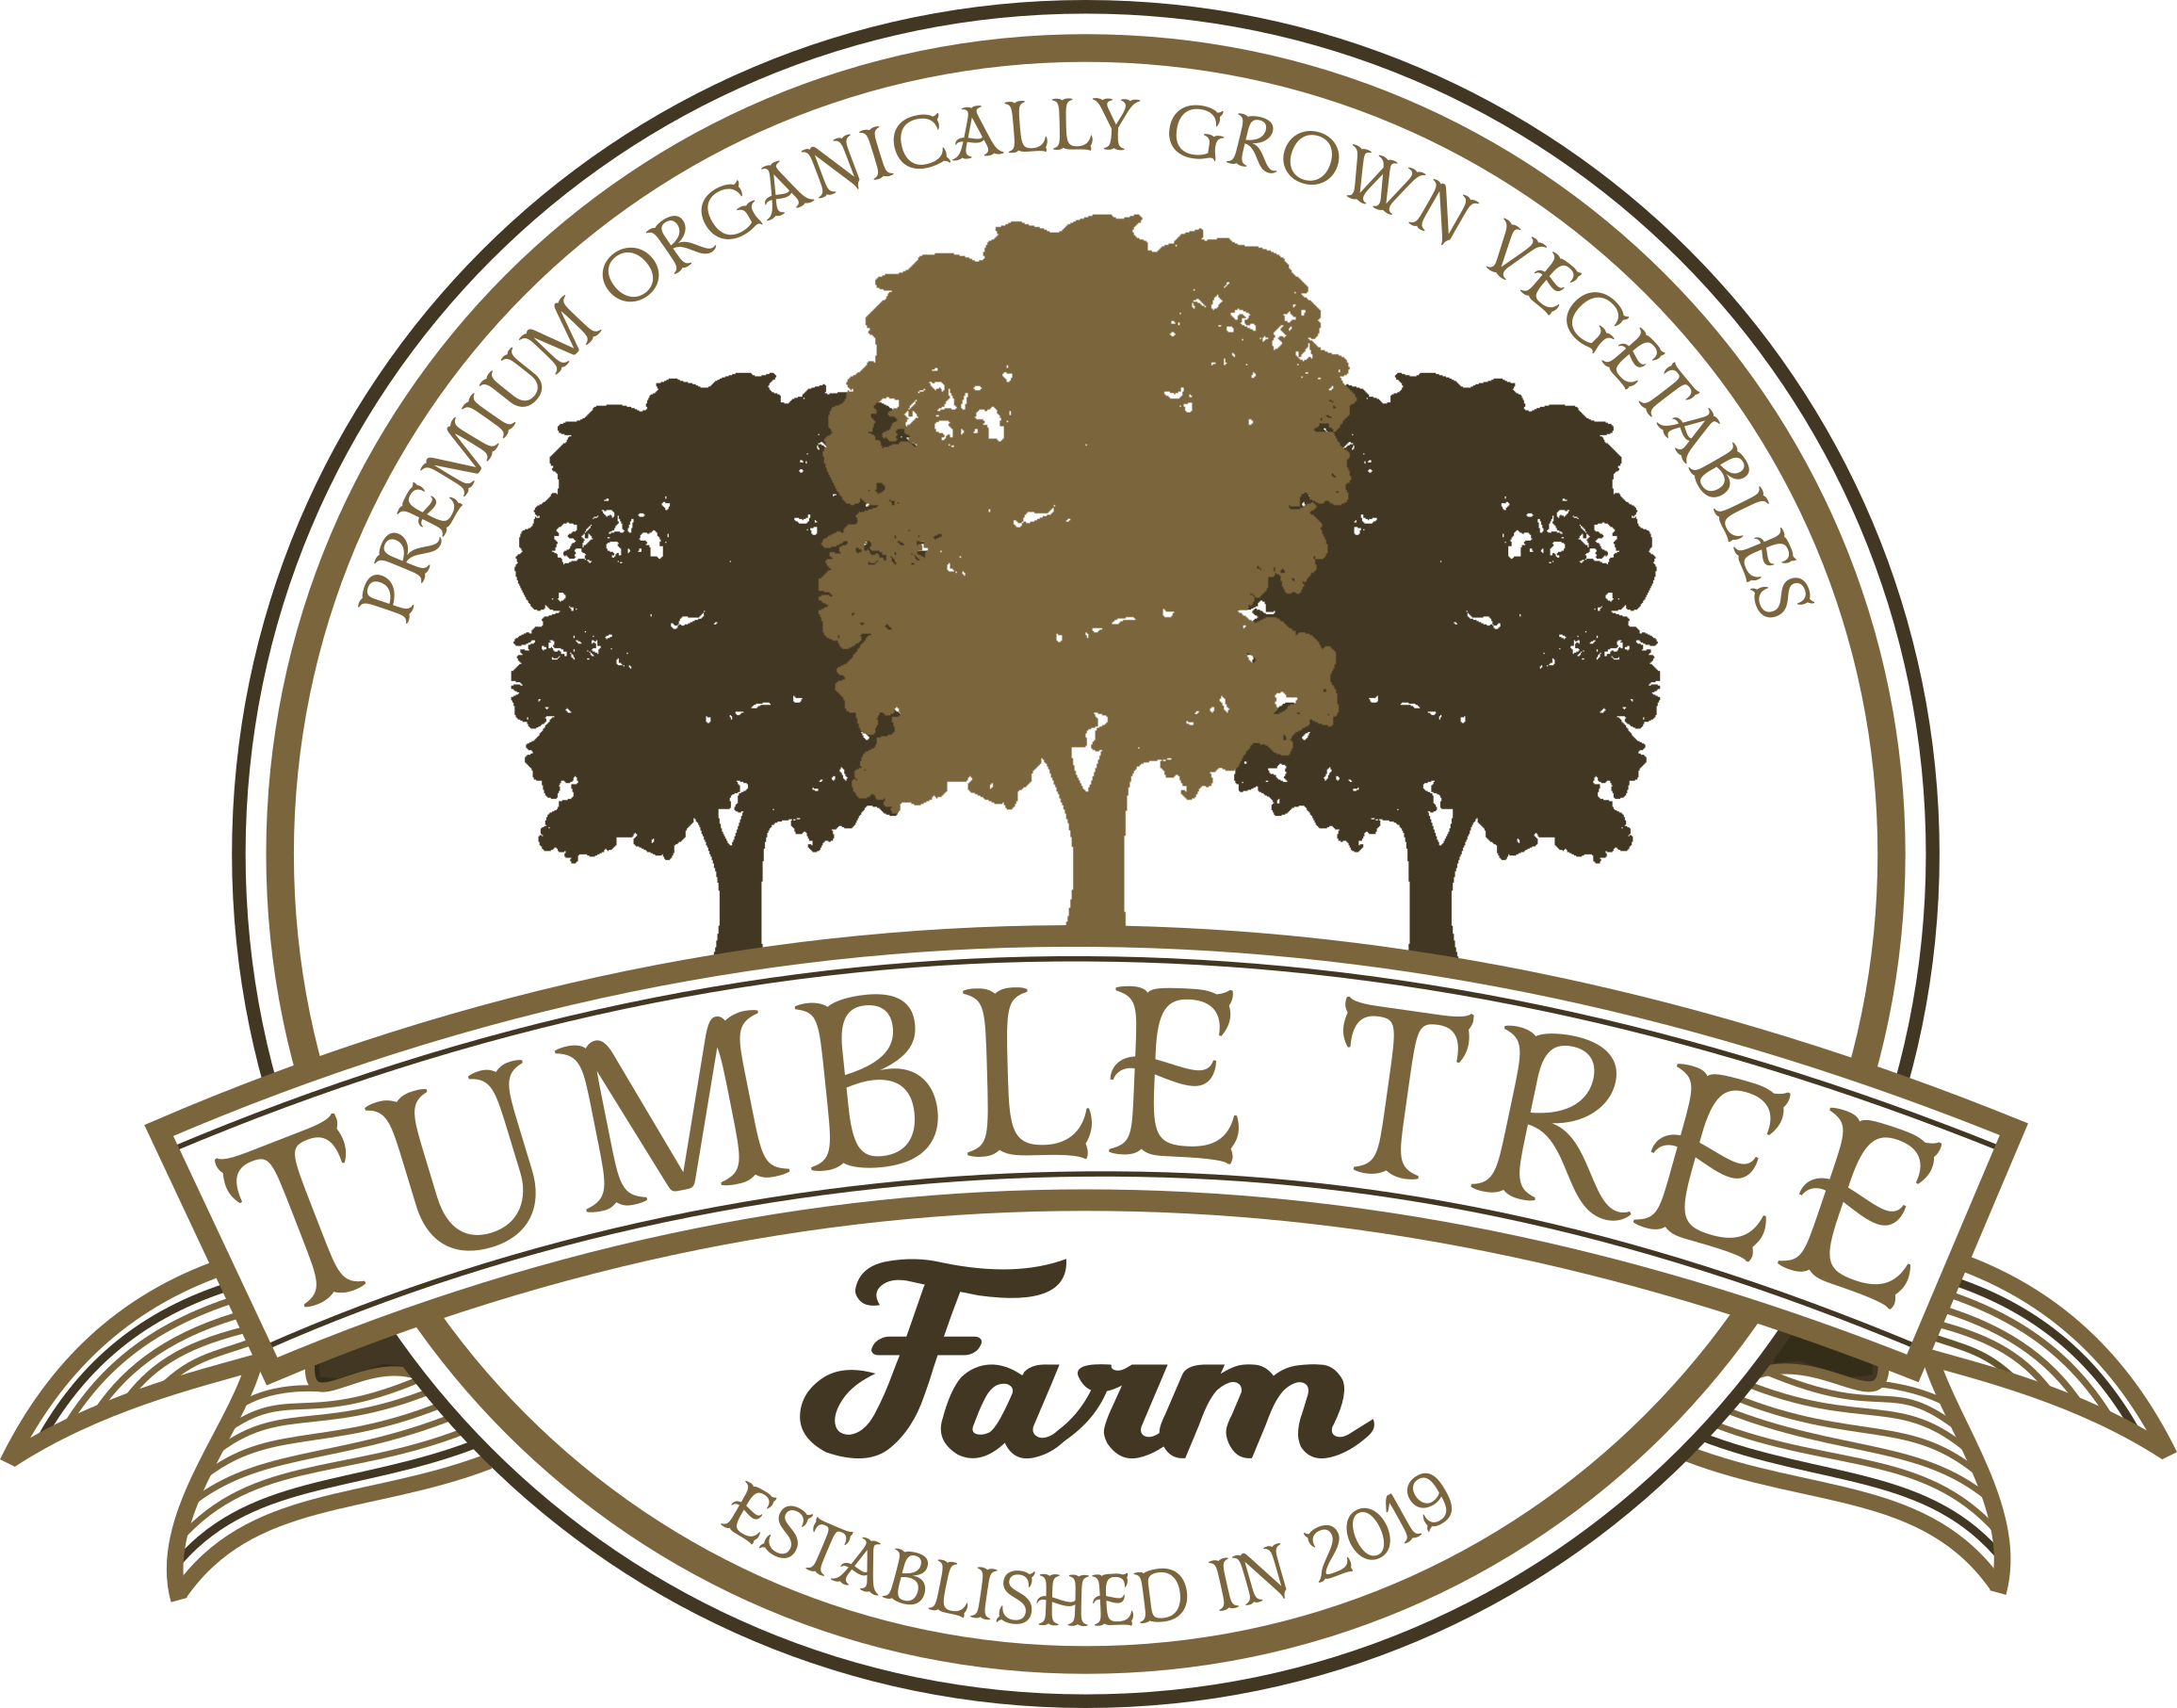 Tumble Tree Farm